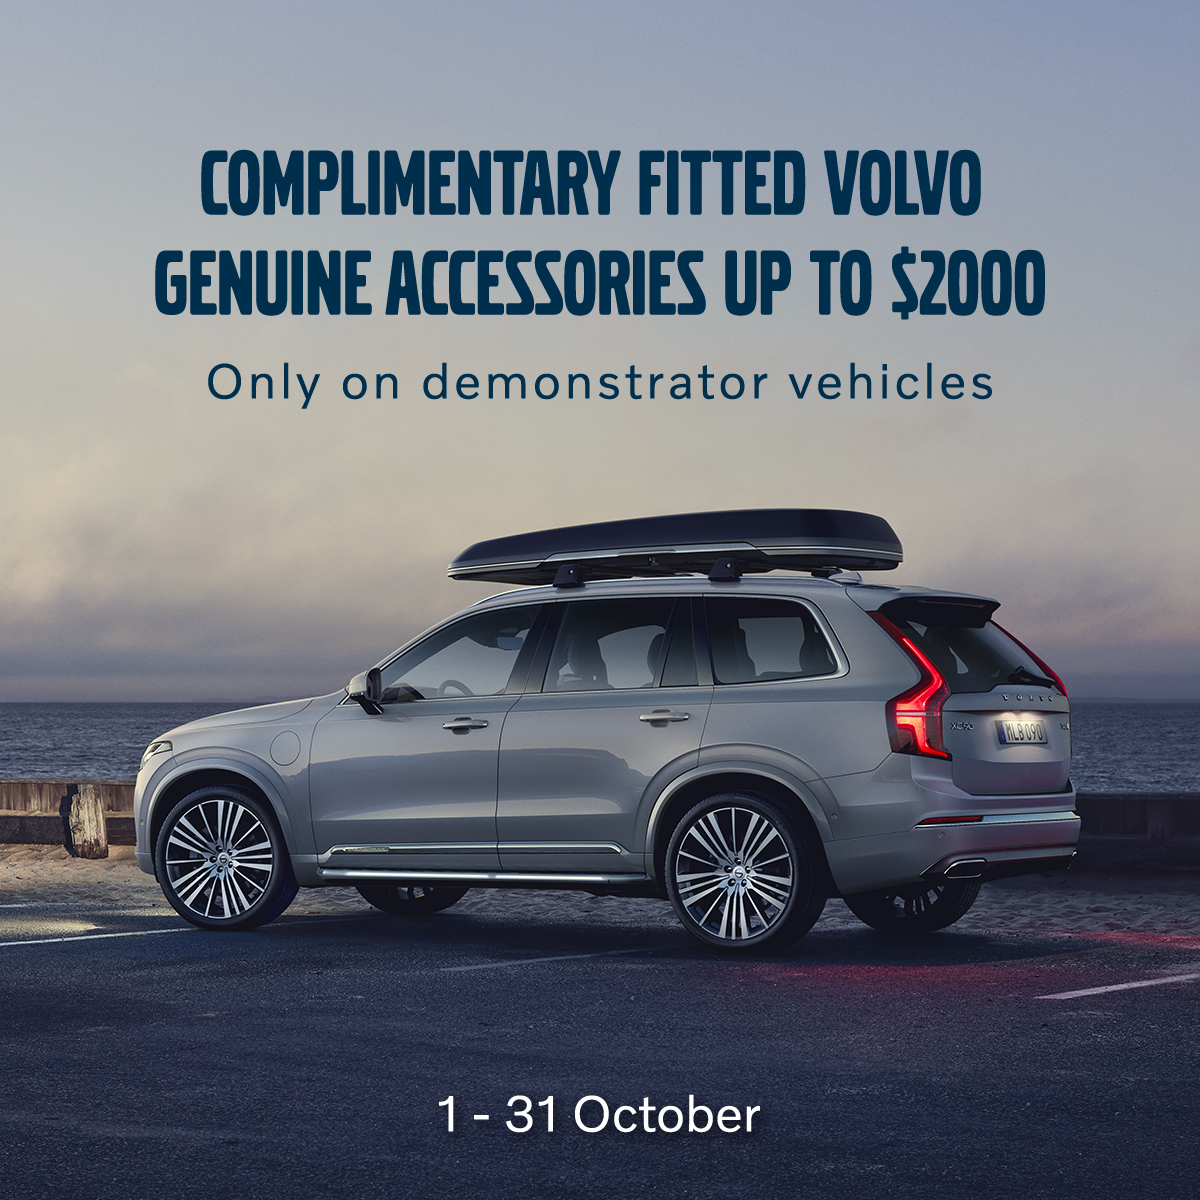 Accessory Offer